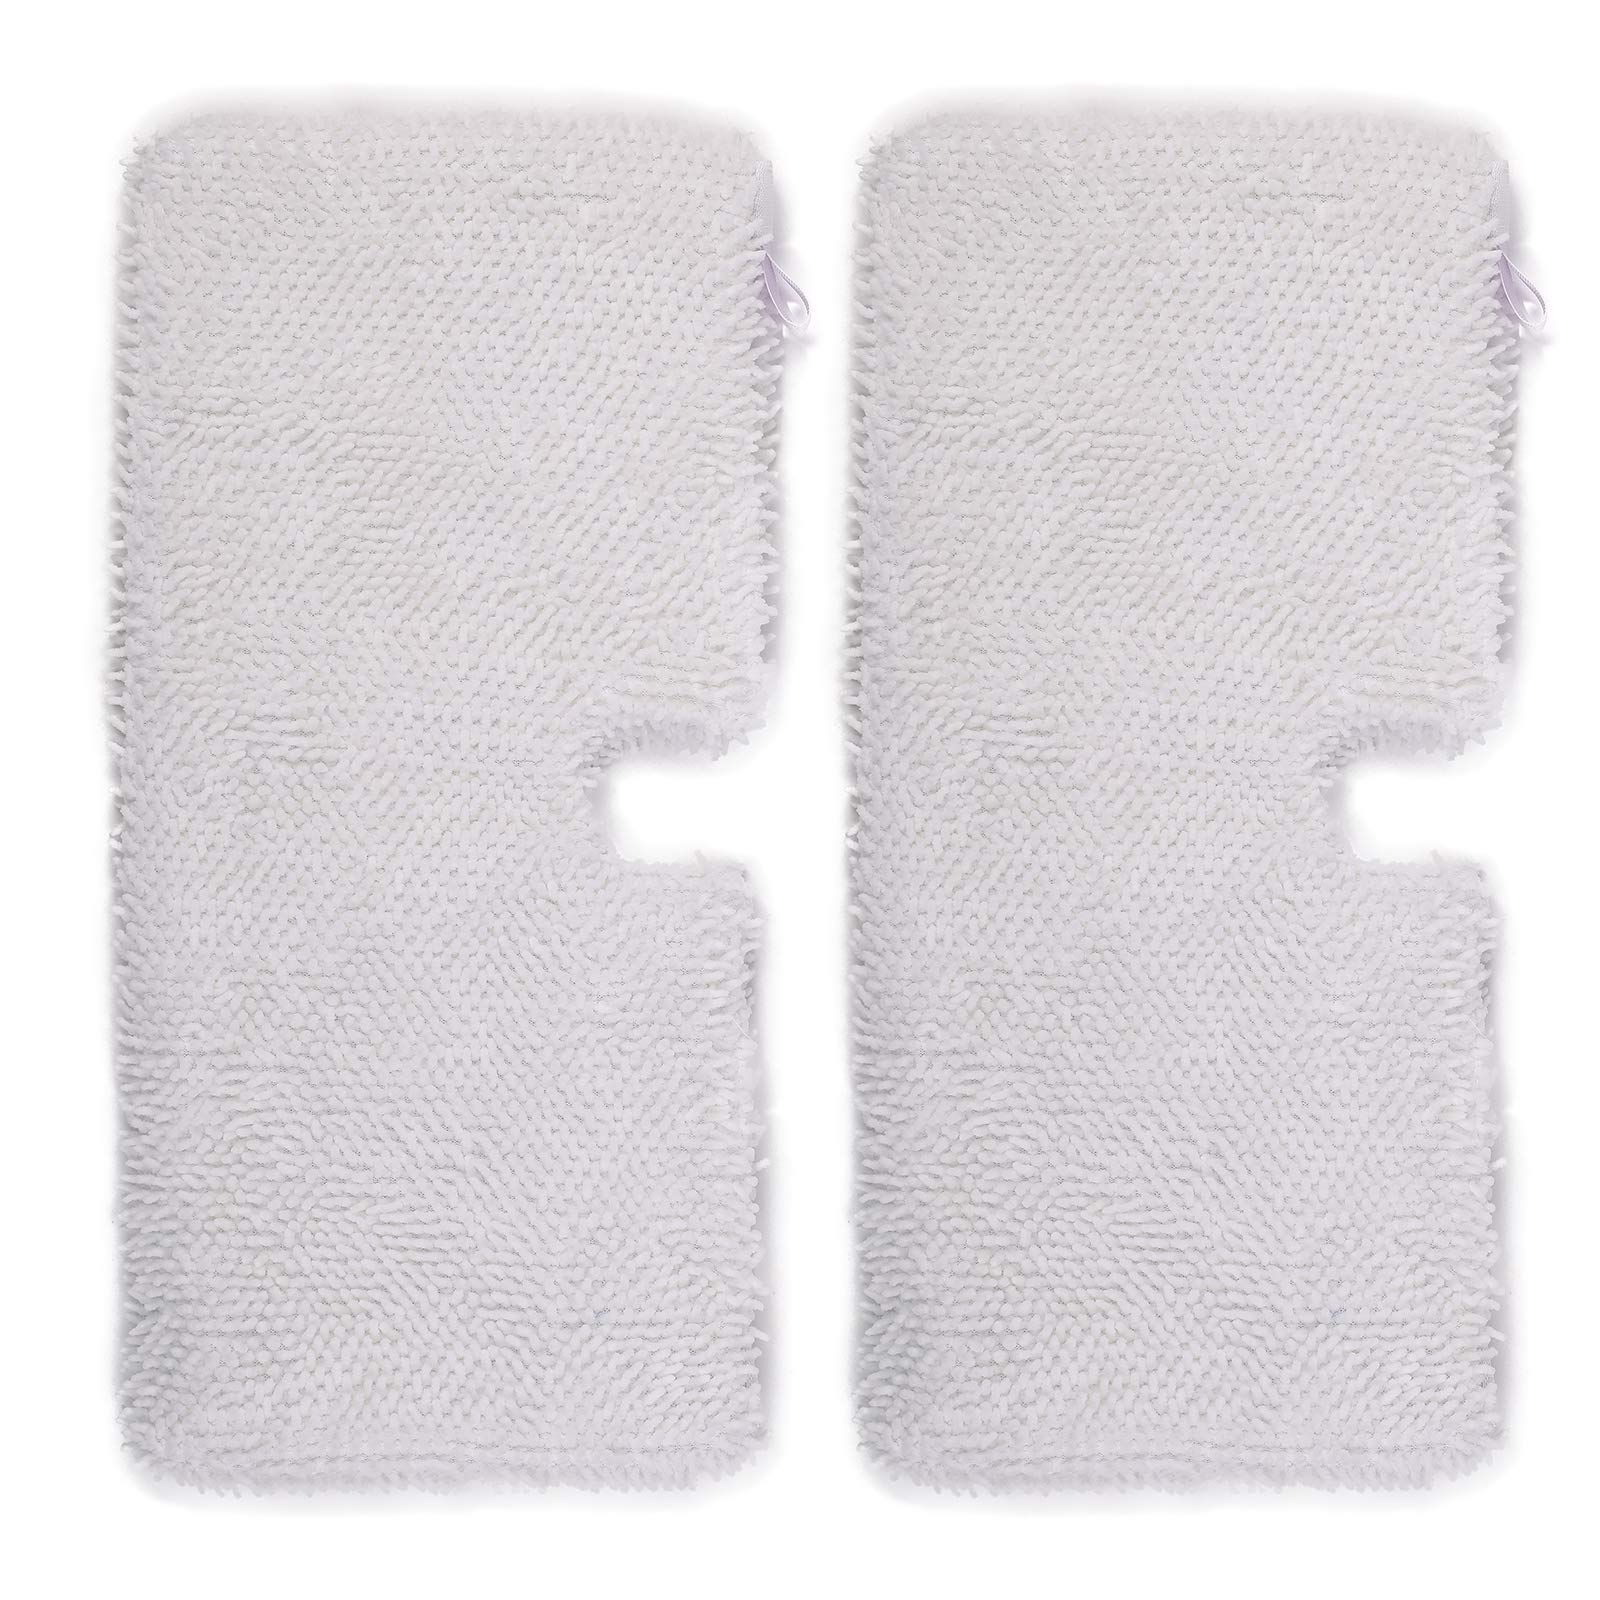 Flammi 2-Pack Replacement XL Large Microfiber Steam Mop Cleaning Pads for Shark Steam Pocket Mops S3501 XLT3501 S3601 (White)